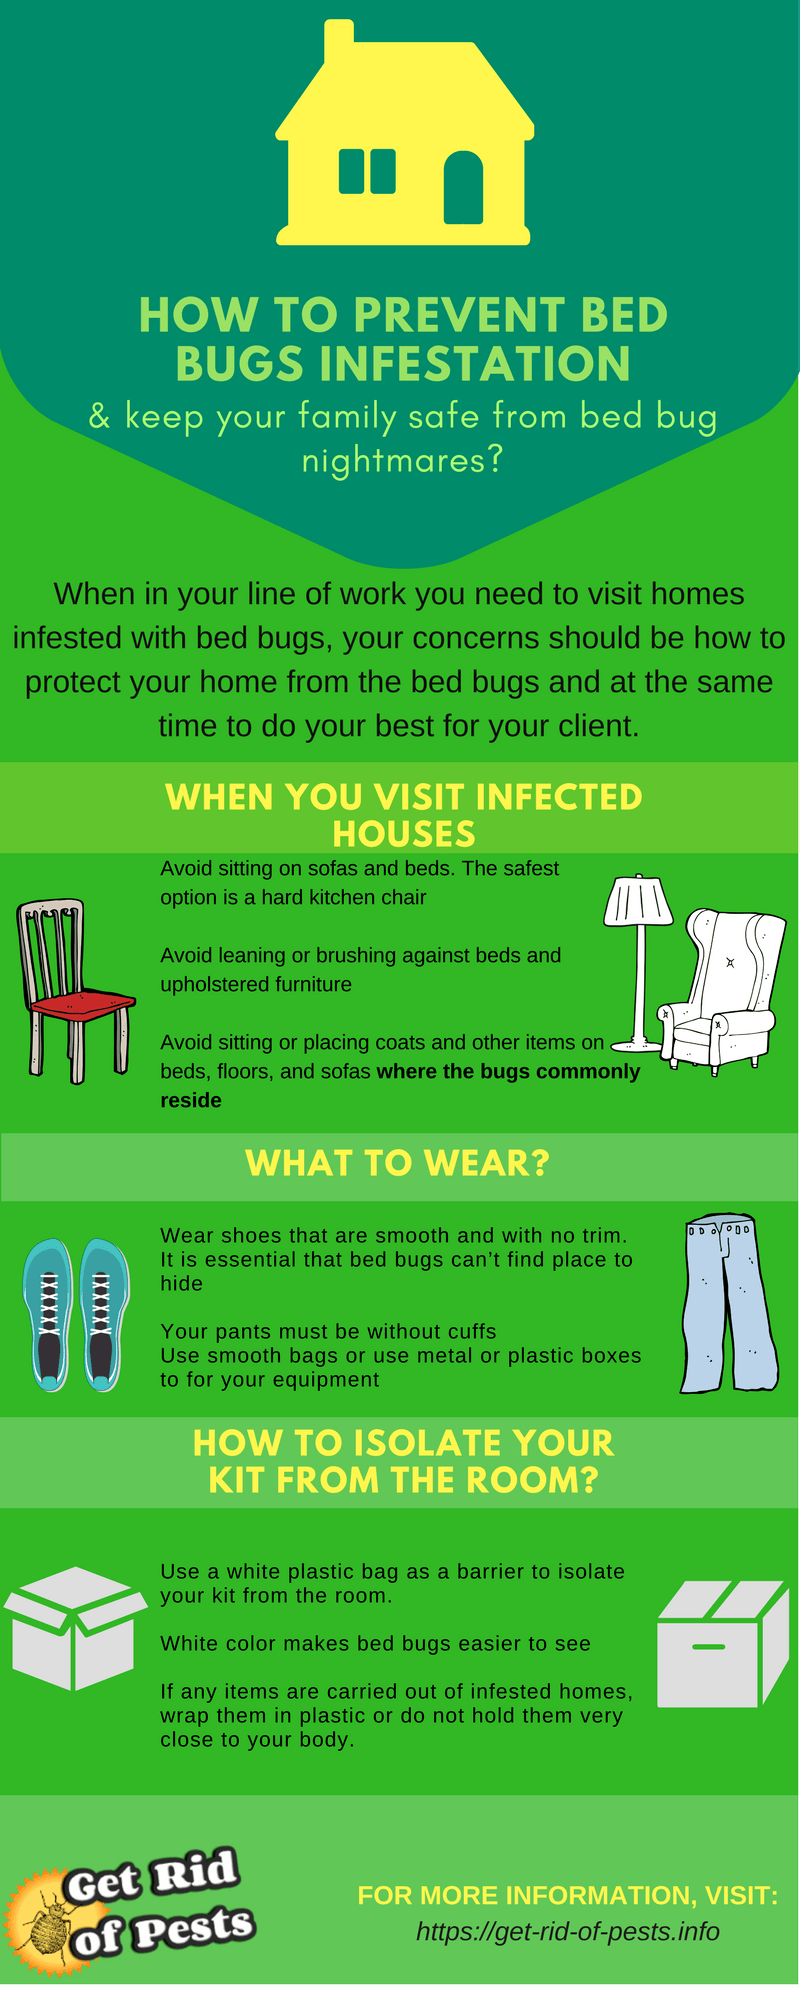 How do you get bed bugs from work? How to avoid bed bugs